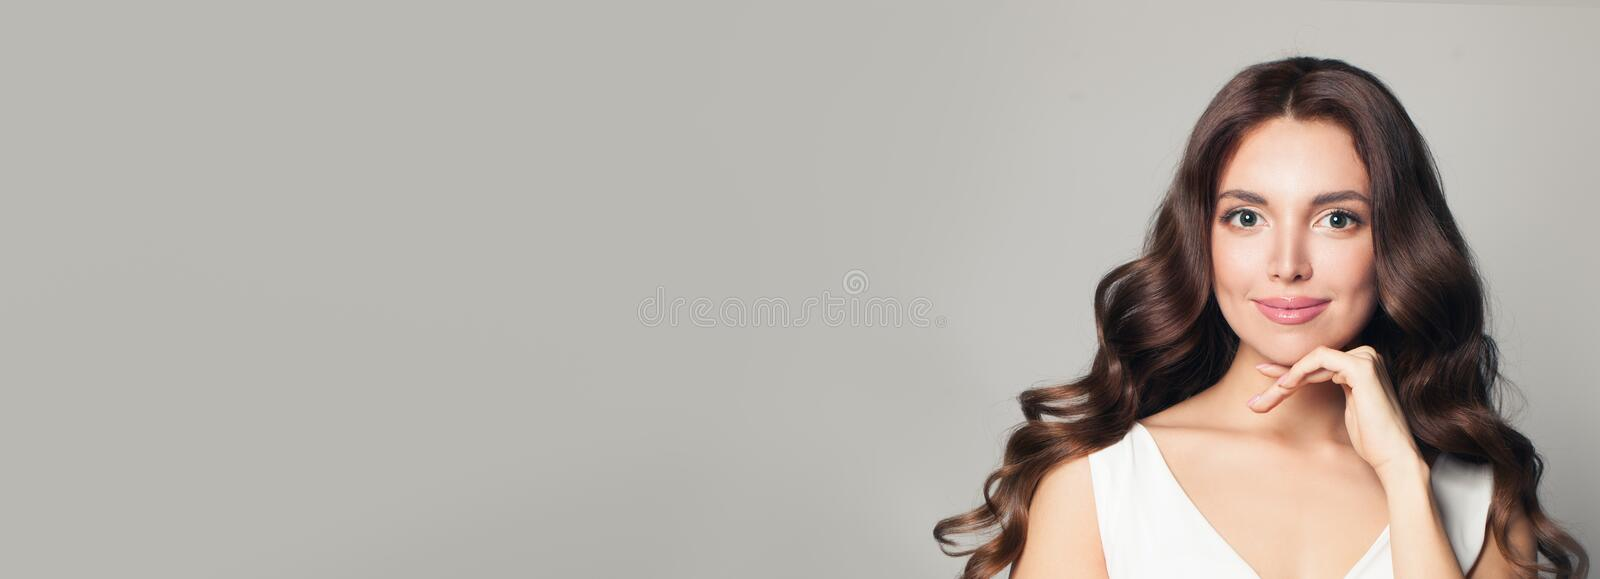 Cute model woman with long curly hair on banner background royalty free stock images